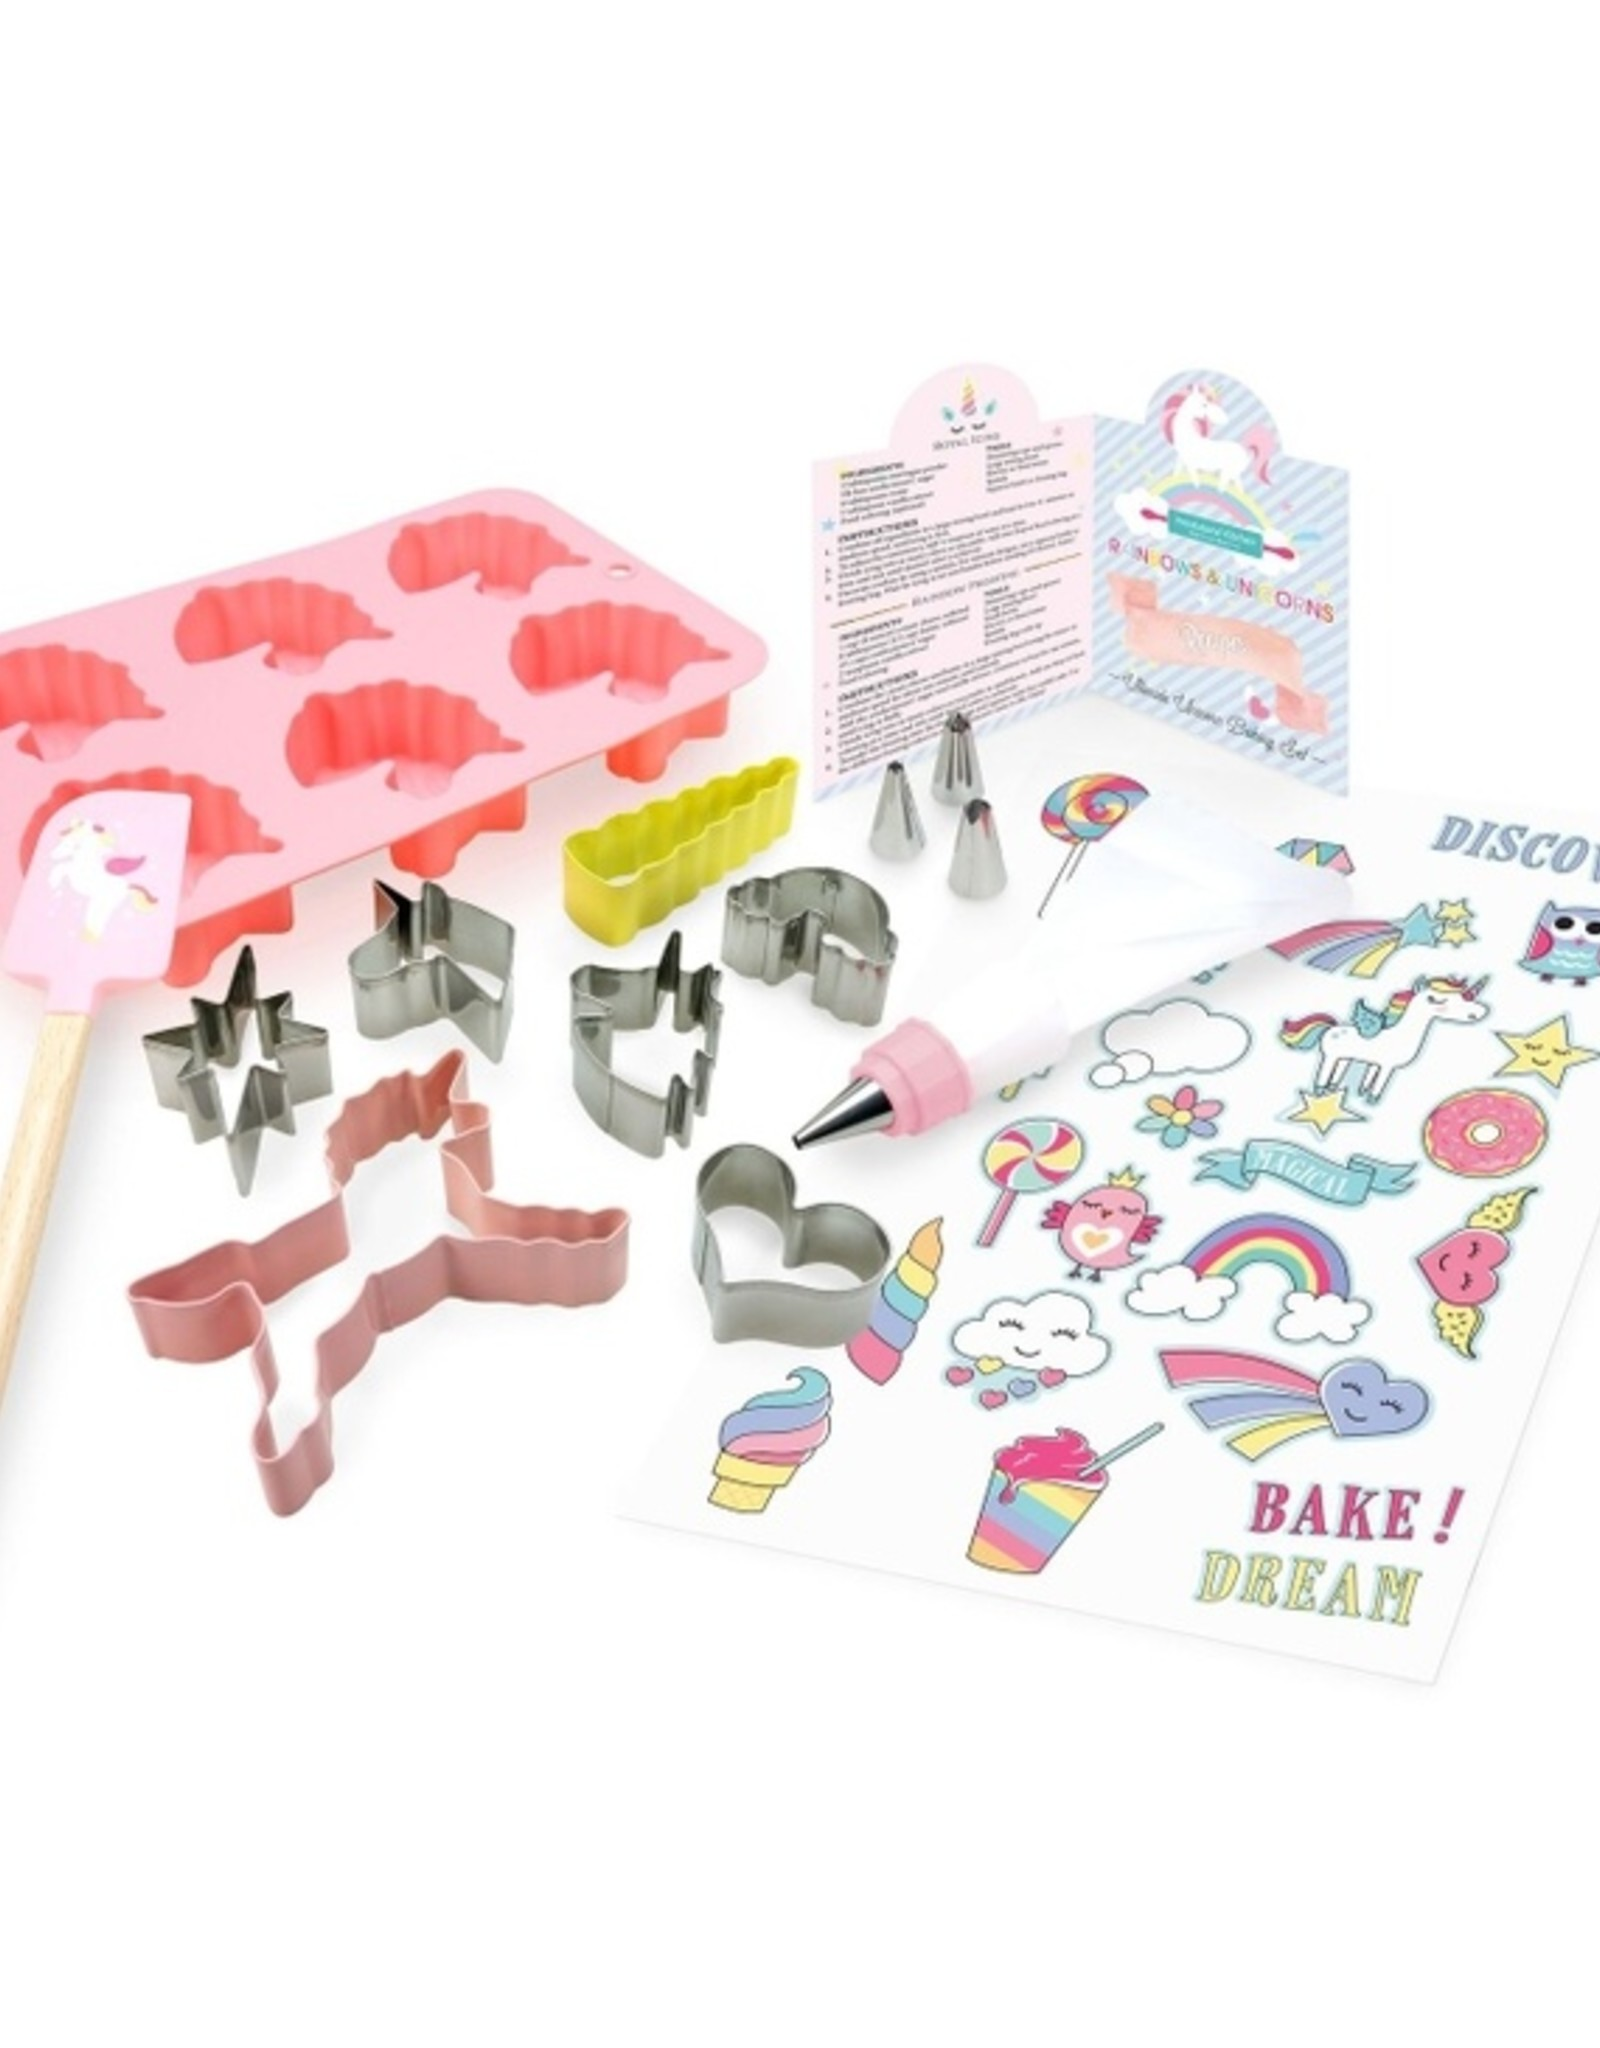 Handstand Kitchen Rainbows & Unicorns Ultimate Baking Party Set